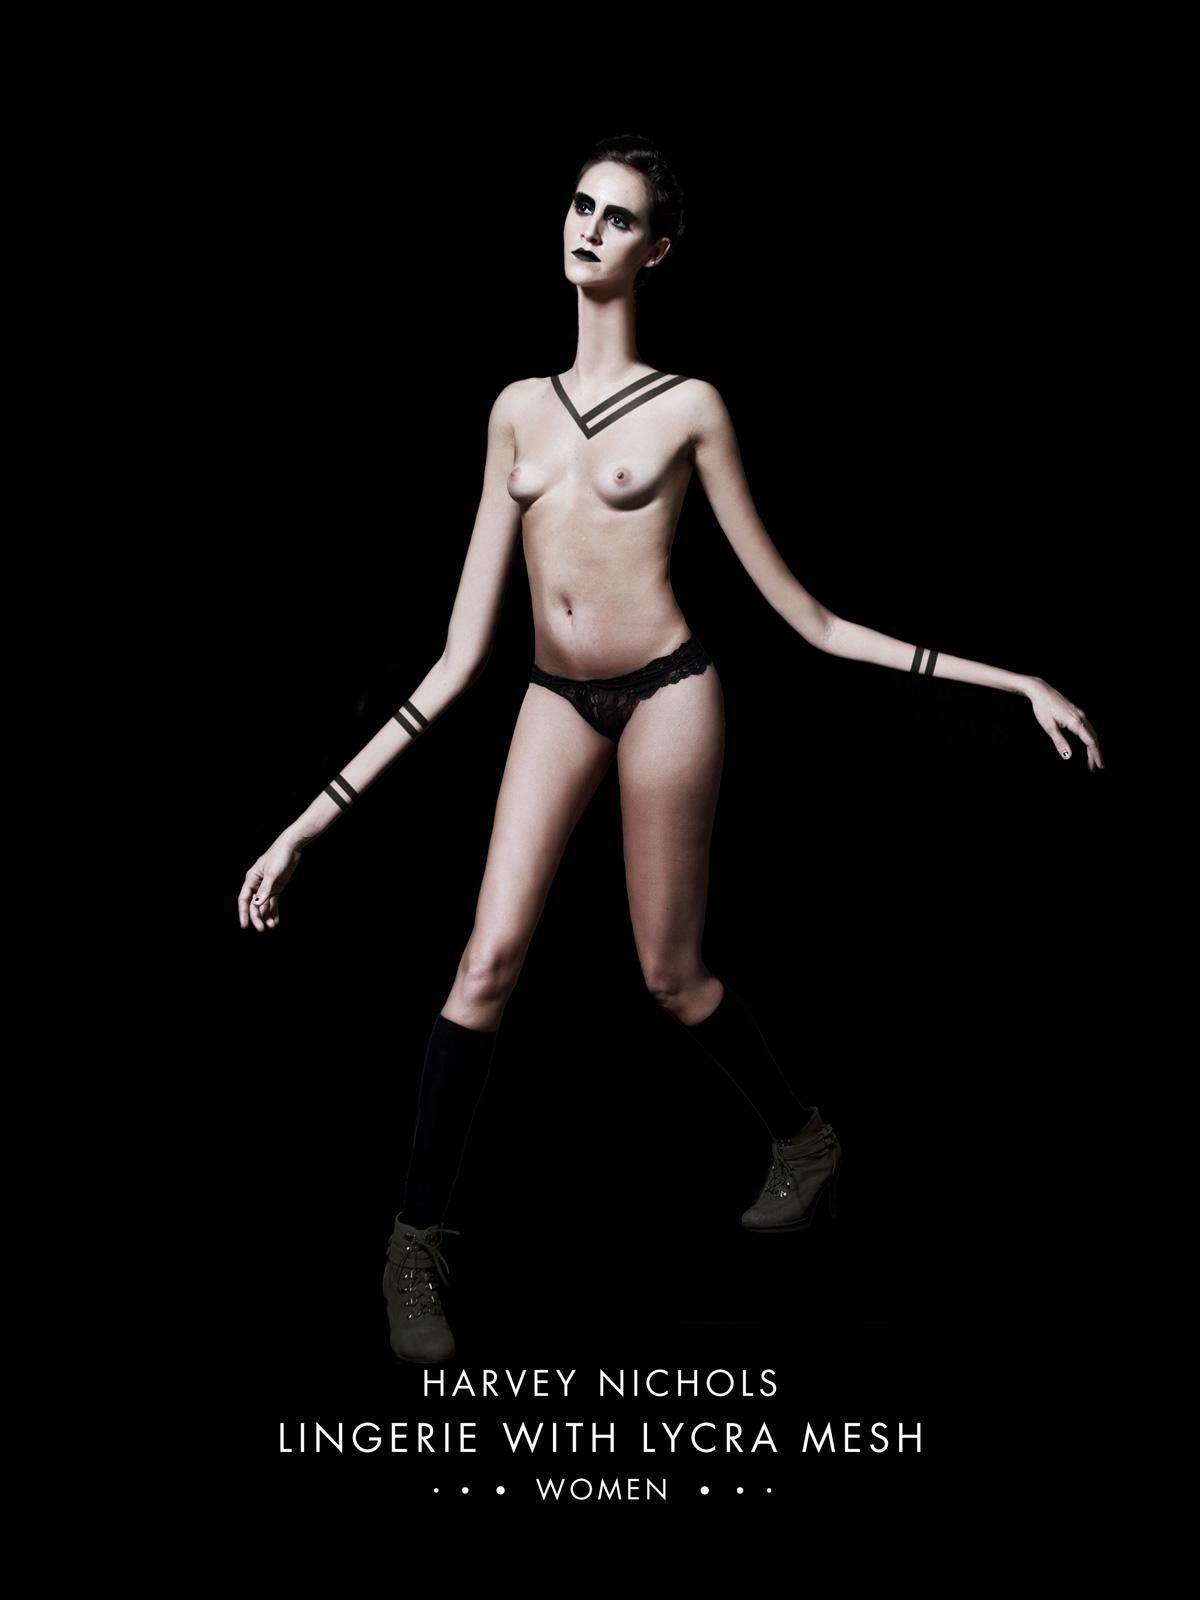 Harvey Nichols Print Ad -  Lingerie With Lycra Mesh, 3